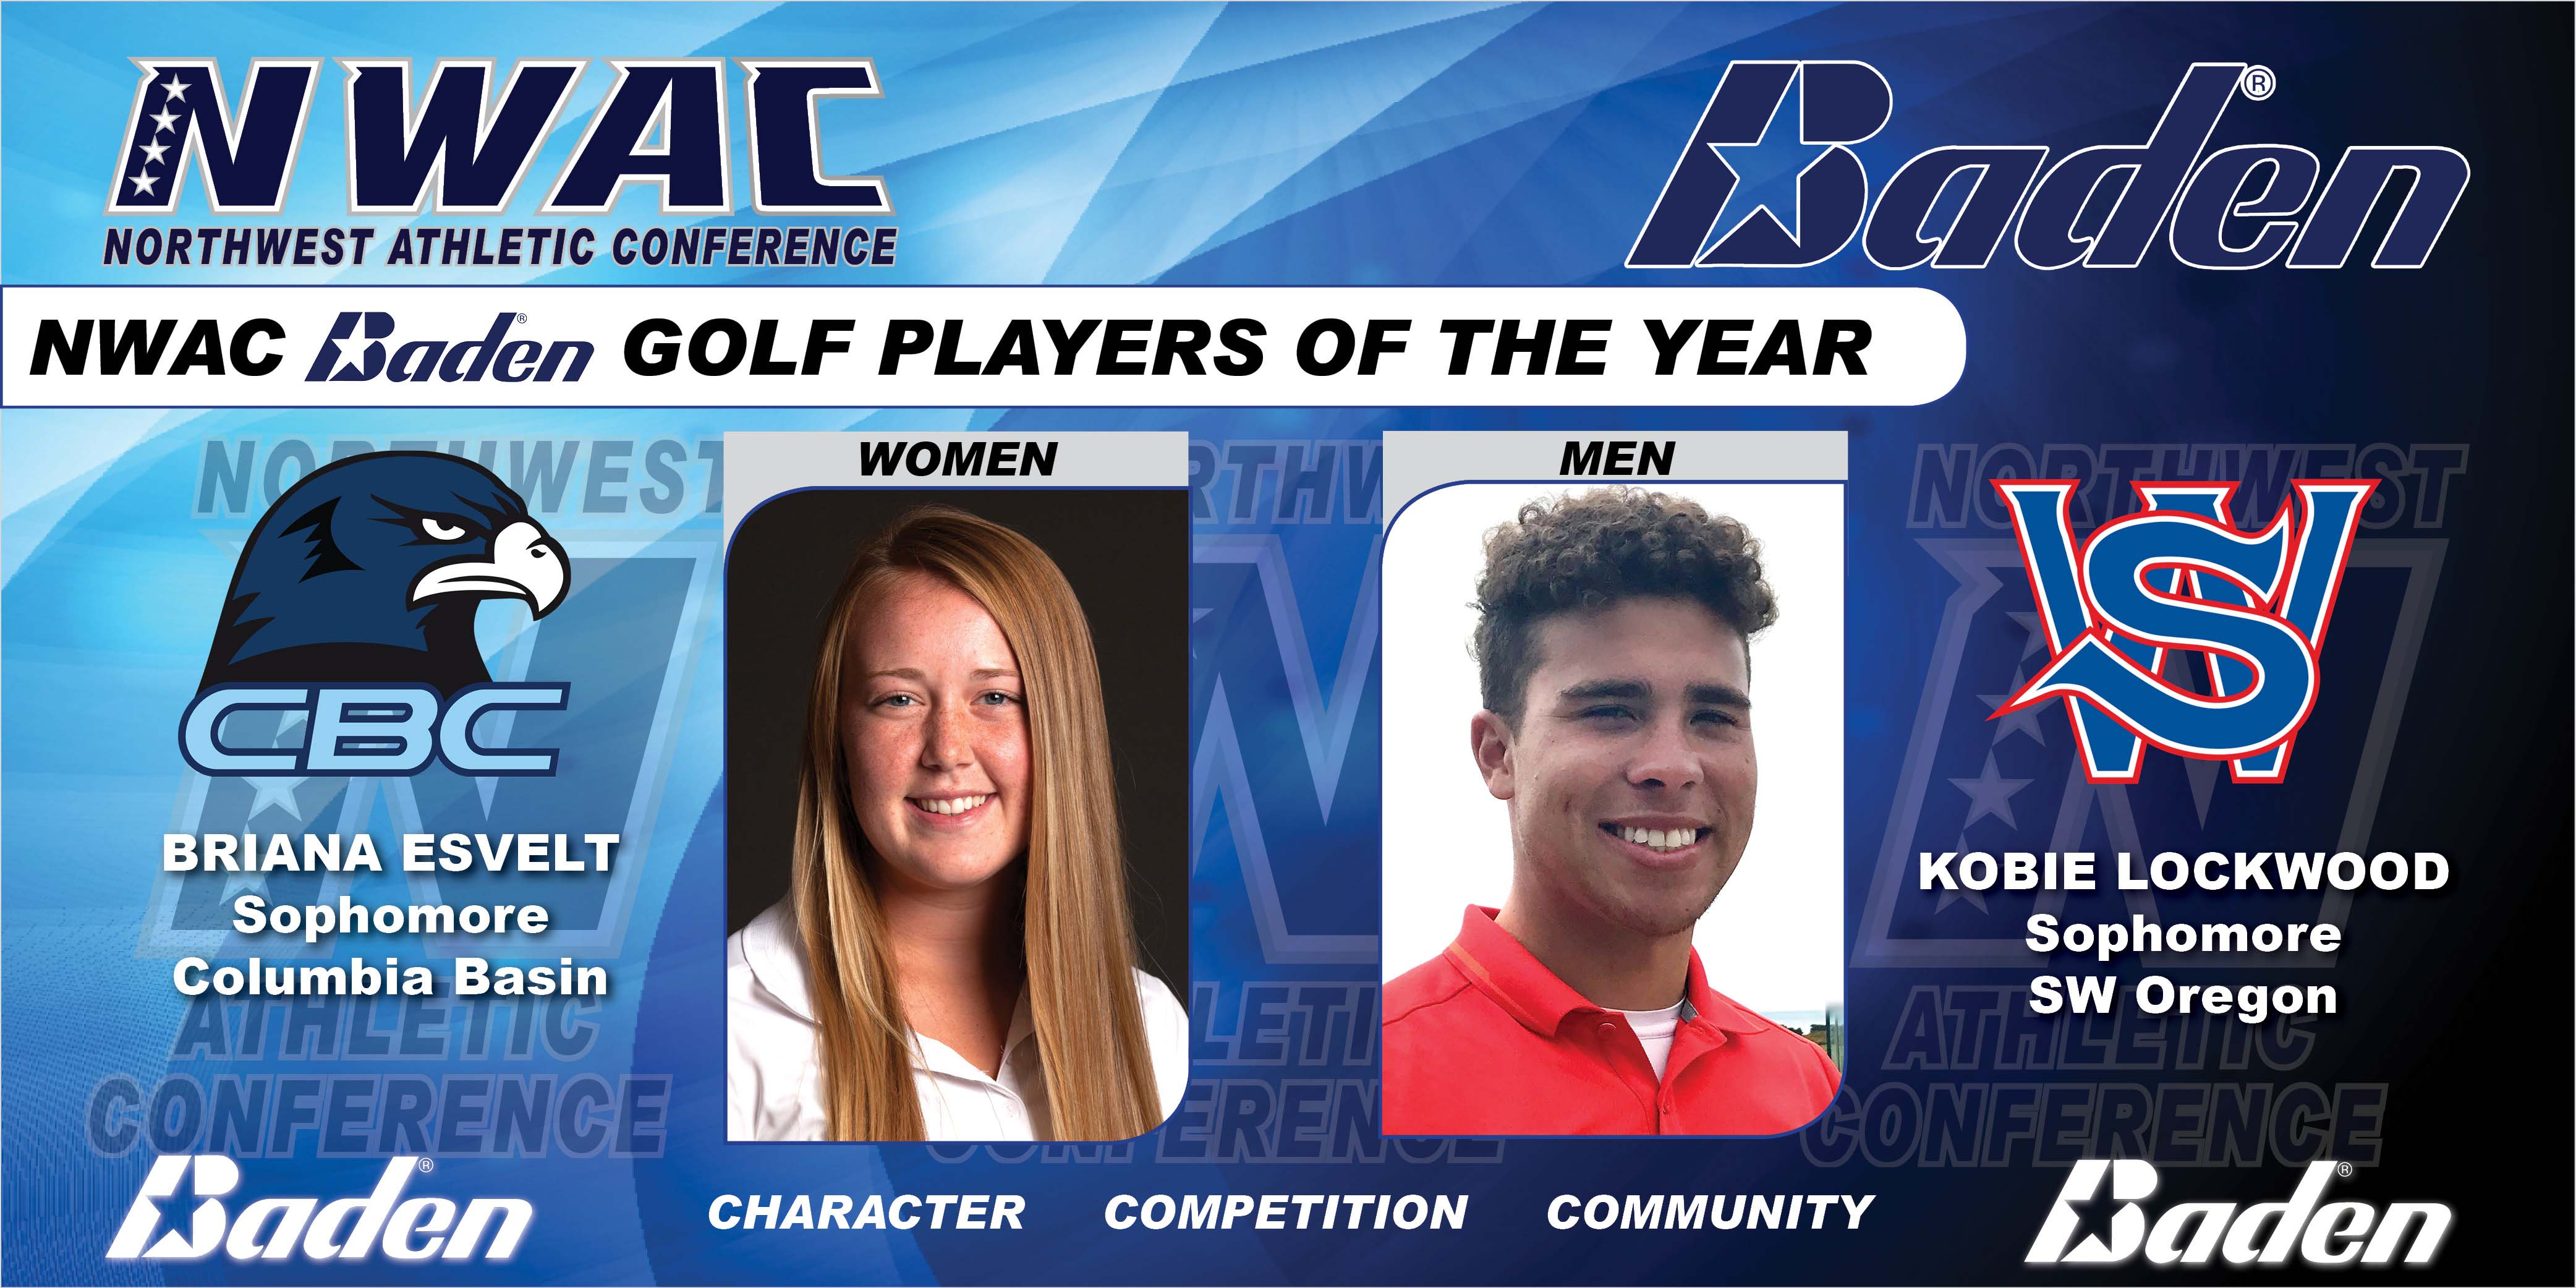 Baden Golf Player's of the Year image